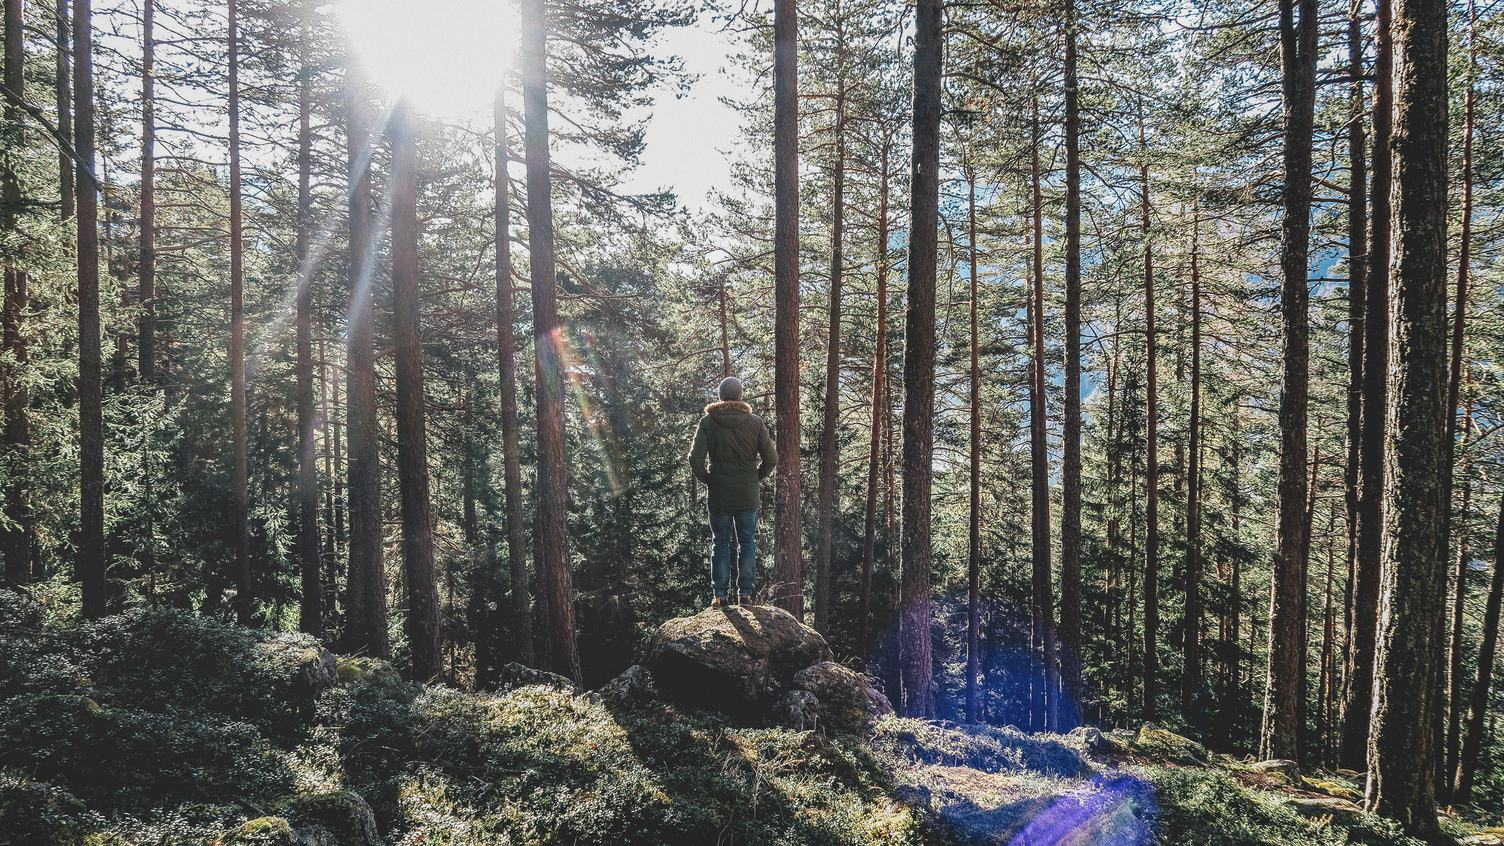 Man Standing on the Rock in the Middle of Forest